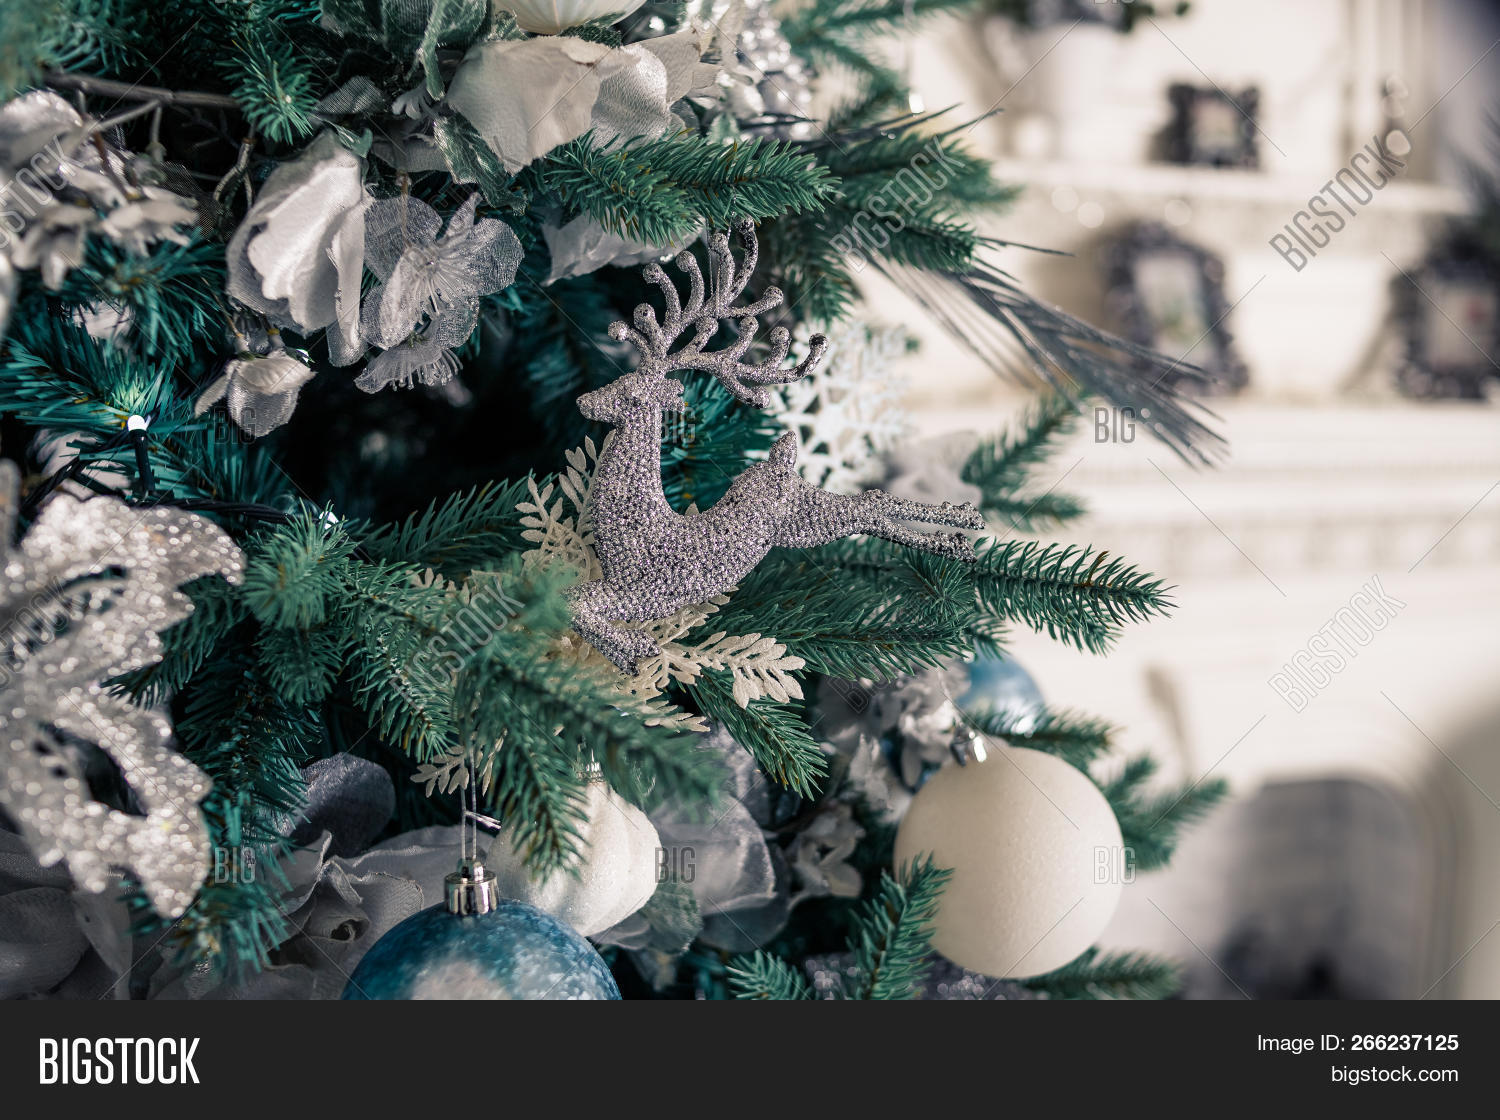 2019,abstract,advent,ball,bauble,blue,branch,bright,calendar,card,celebrate,celebration,christmas,close,color,colorful,december,decor,decorate,decoration,decorative,design,detail,festive,fir,gift,green,greeting,happy,holiday,light,merry,new,object,ornament,pine,ribbon,season,seasonal,shiny,silver,snow,sphere,tradition,traditional,tree,white,winter,xmas,year